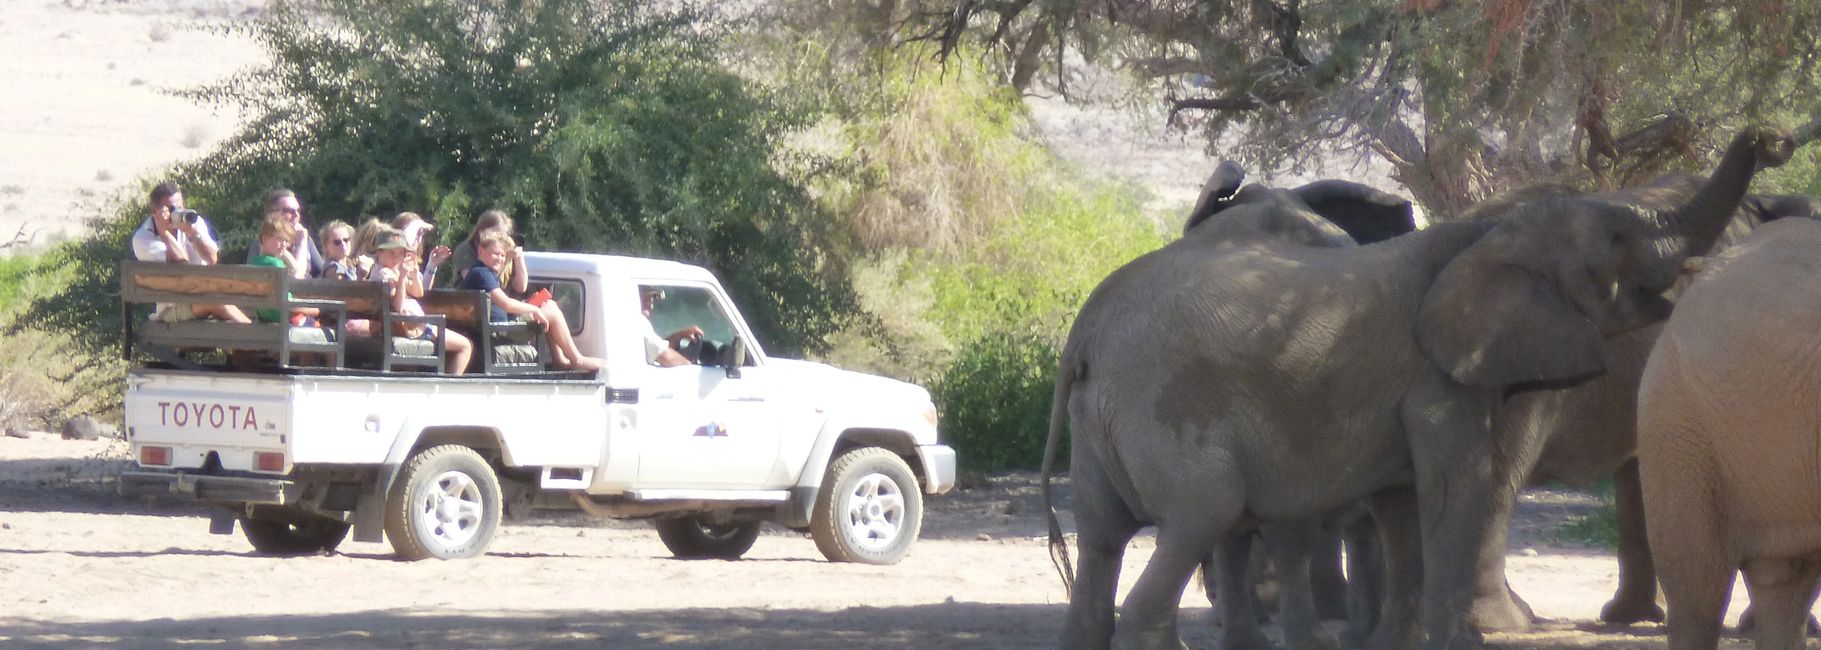 Safari Deal Robin Cormack World Adventure Africa The Travelers Blueprint Big Five Animals Gorillas